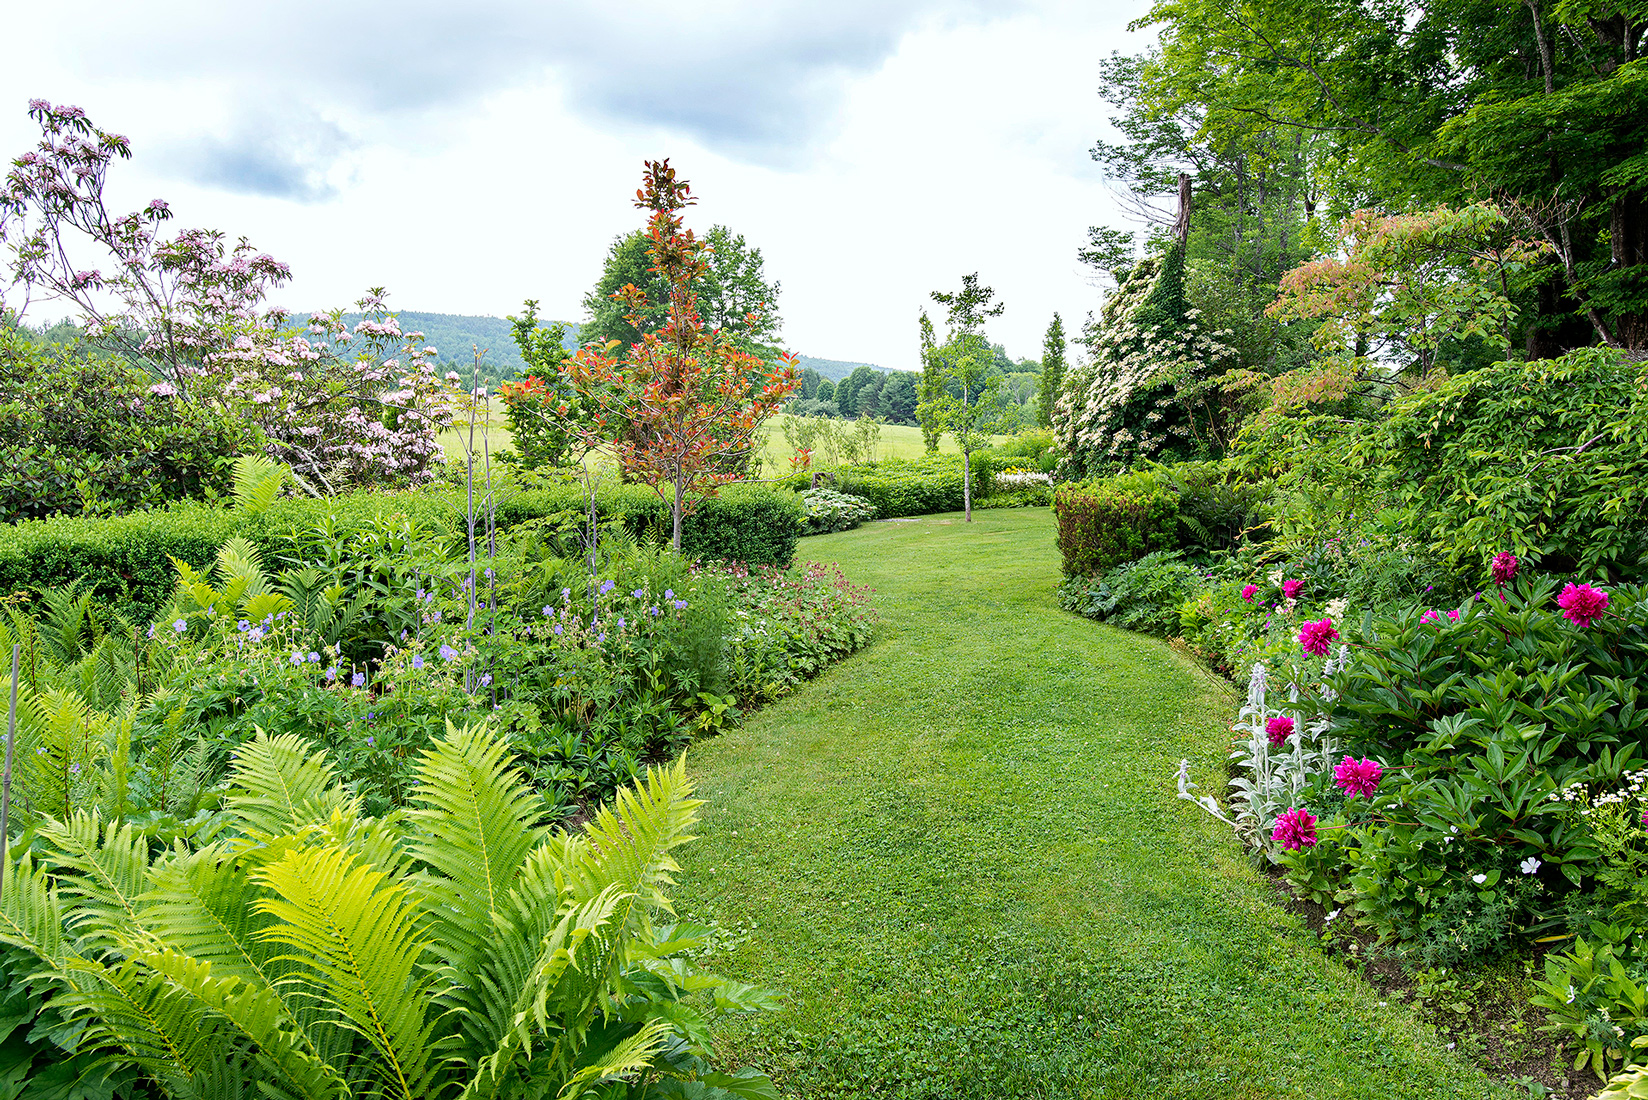 landscaped garden view of winding path